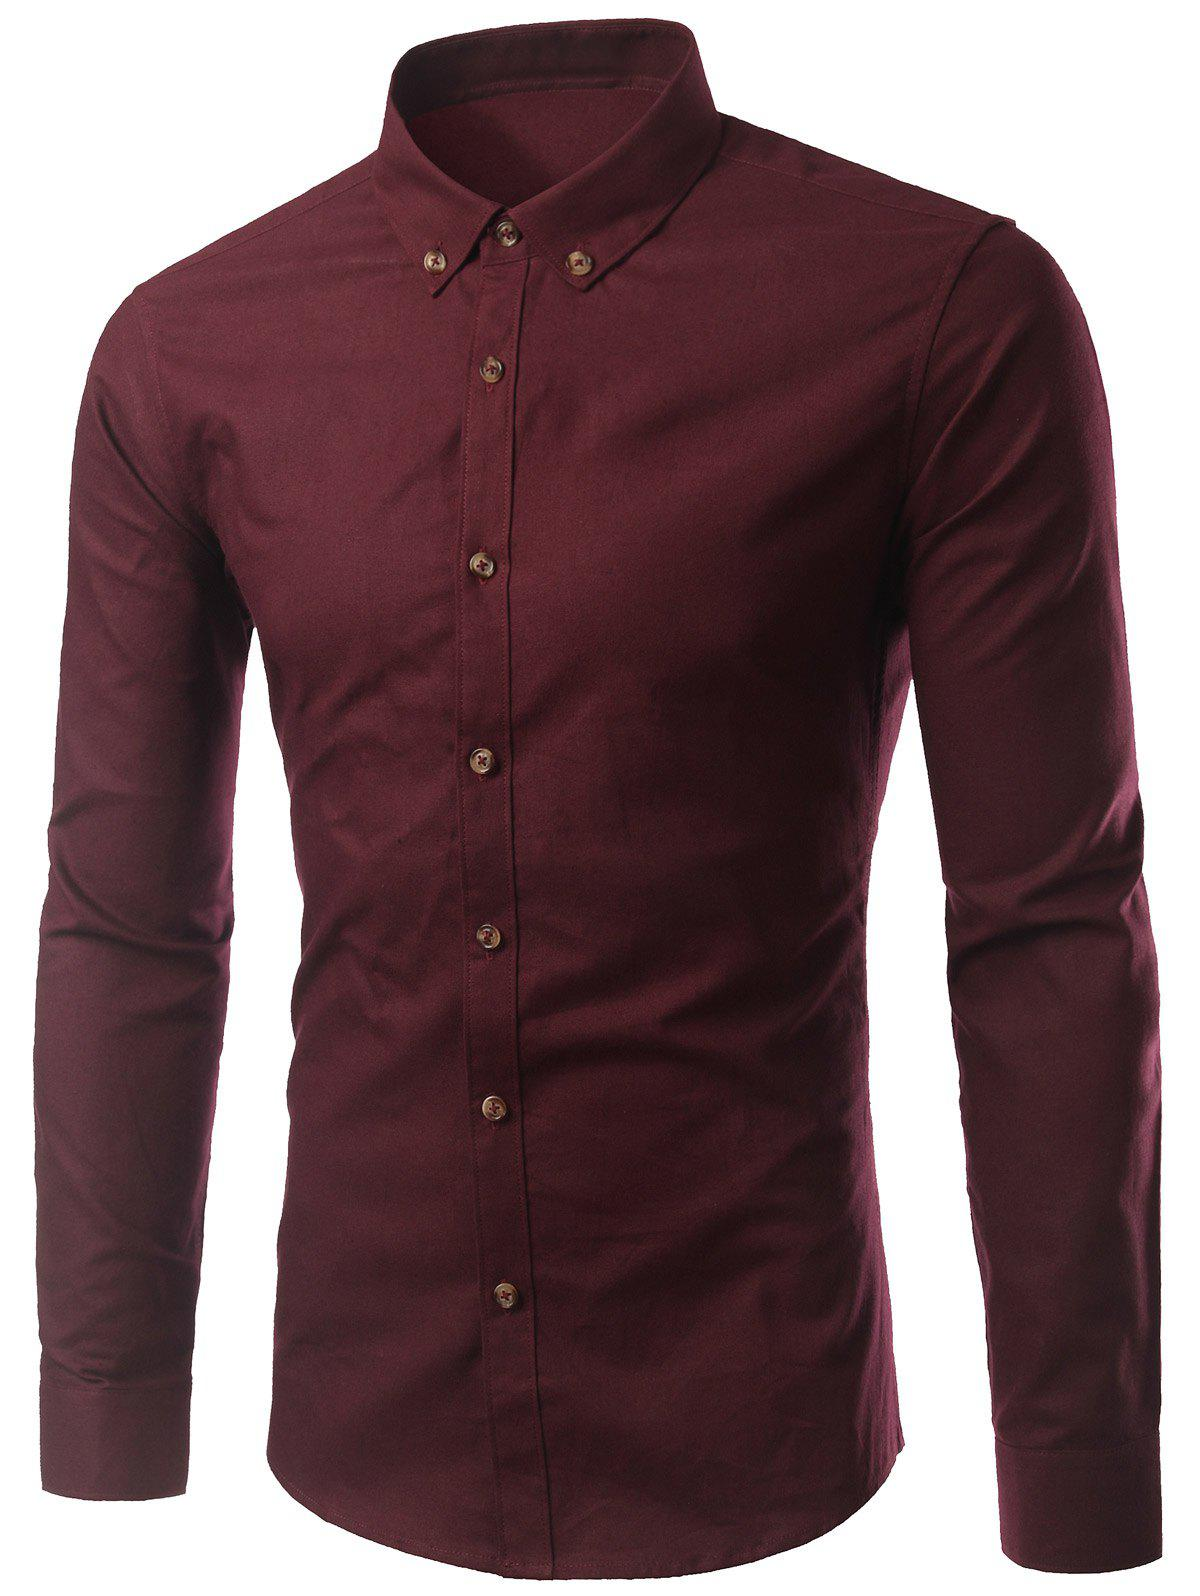 Plus Size Button-Down Long Sleeve Slimming Men's Shirt - WINE RED 5XL